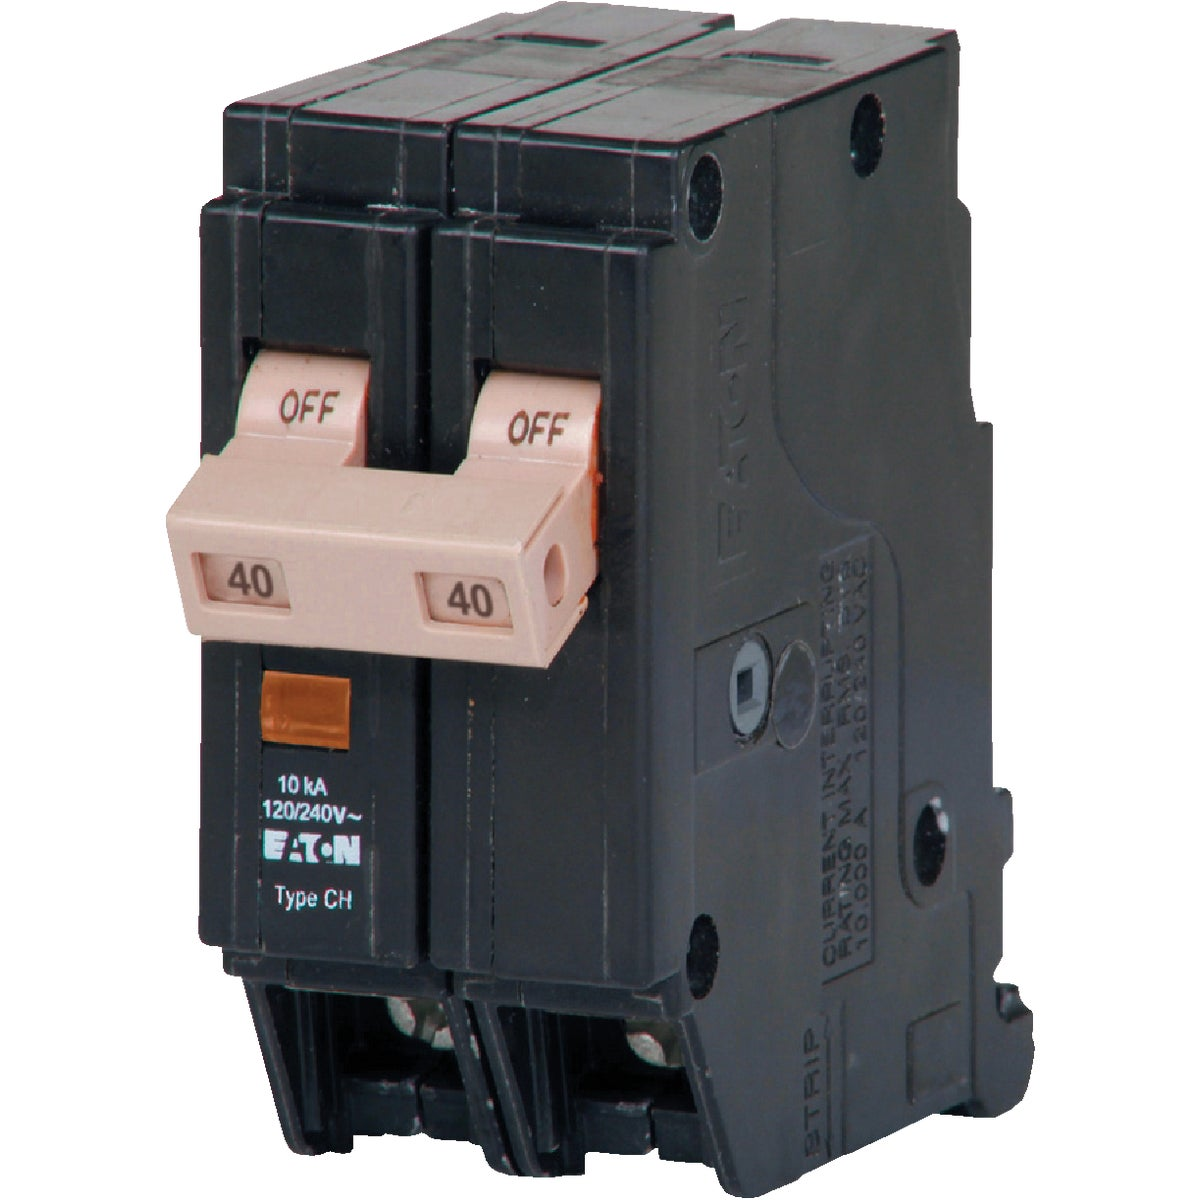 40A 2P CIRCUIT BREAKER - CHF240 by Eaton Corporation